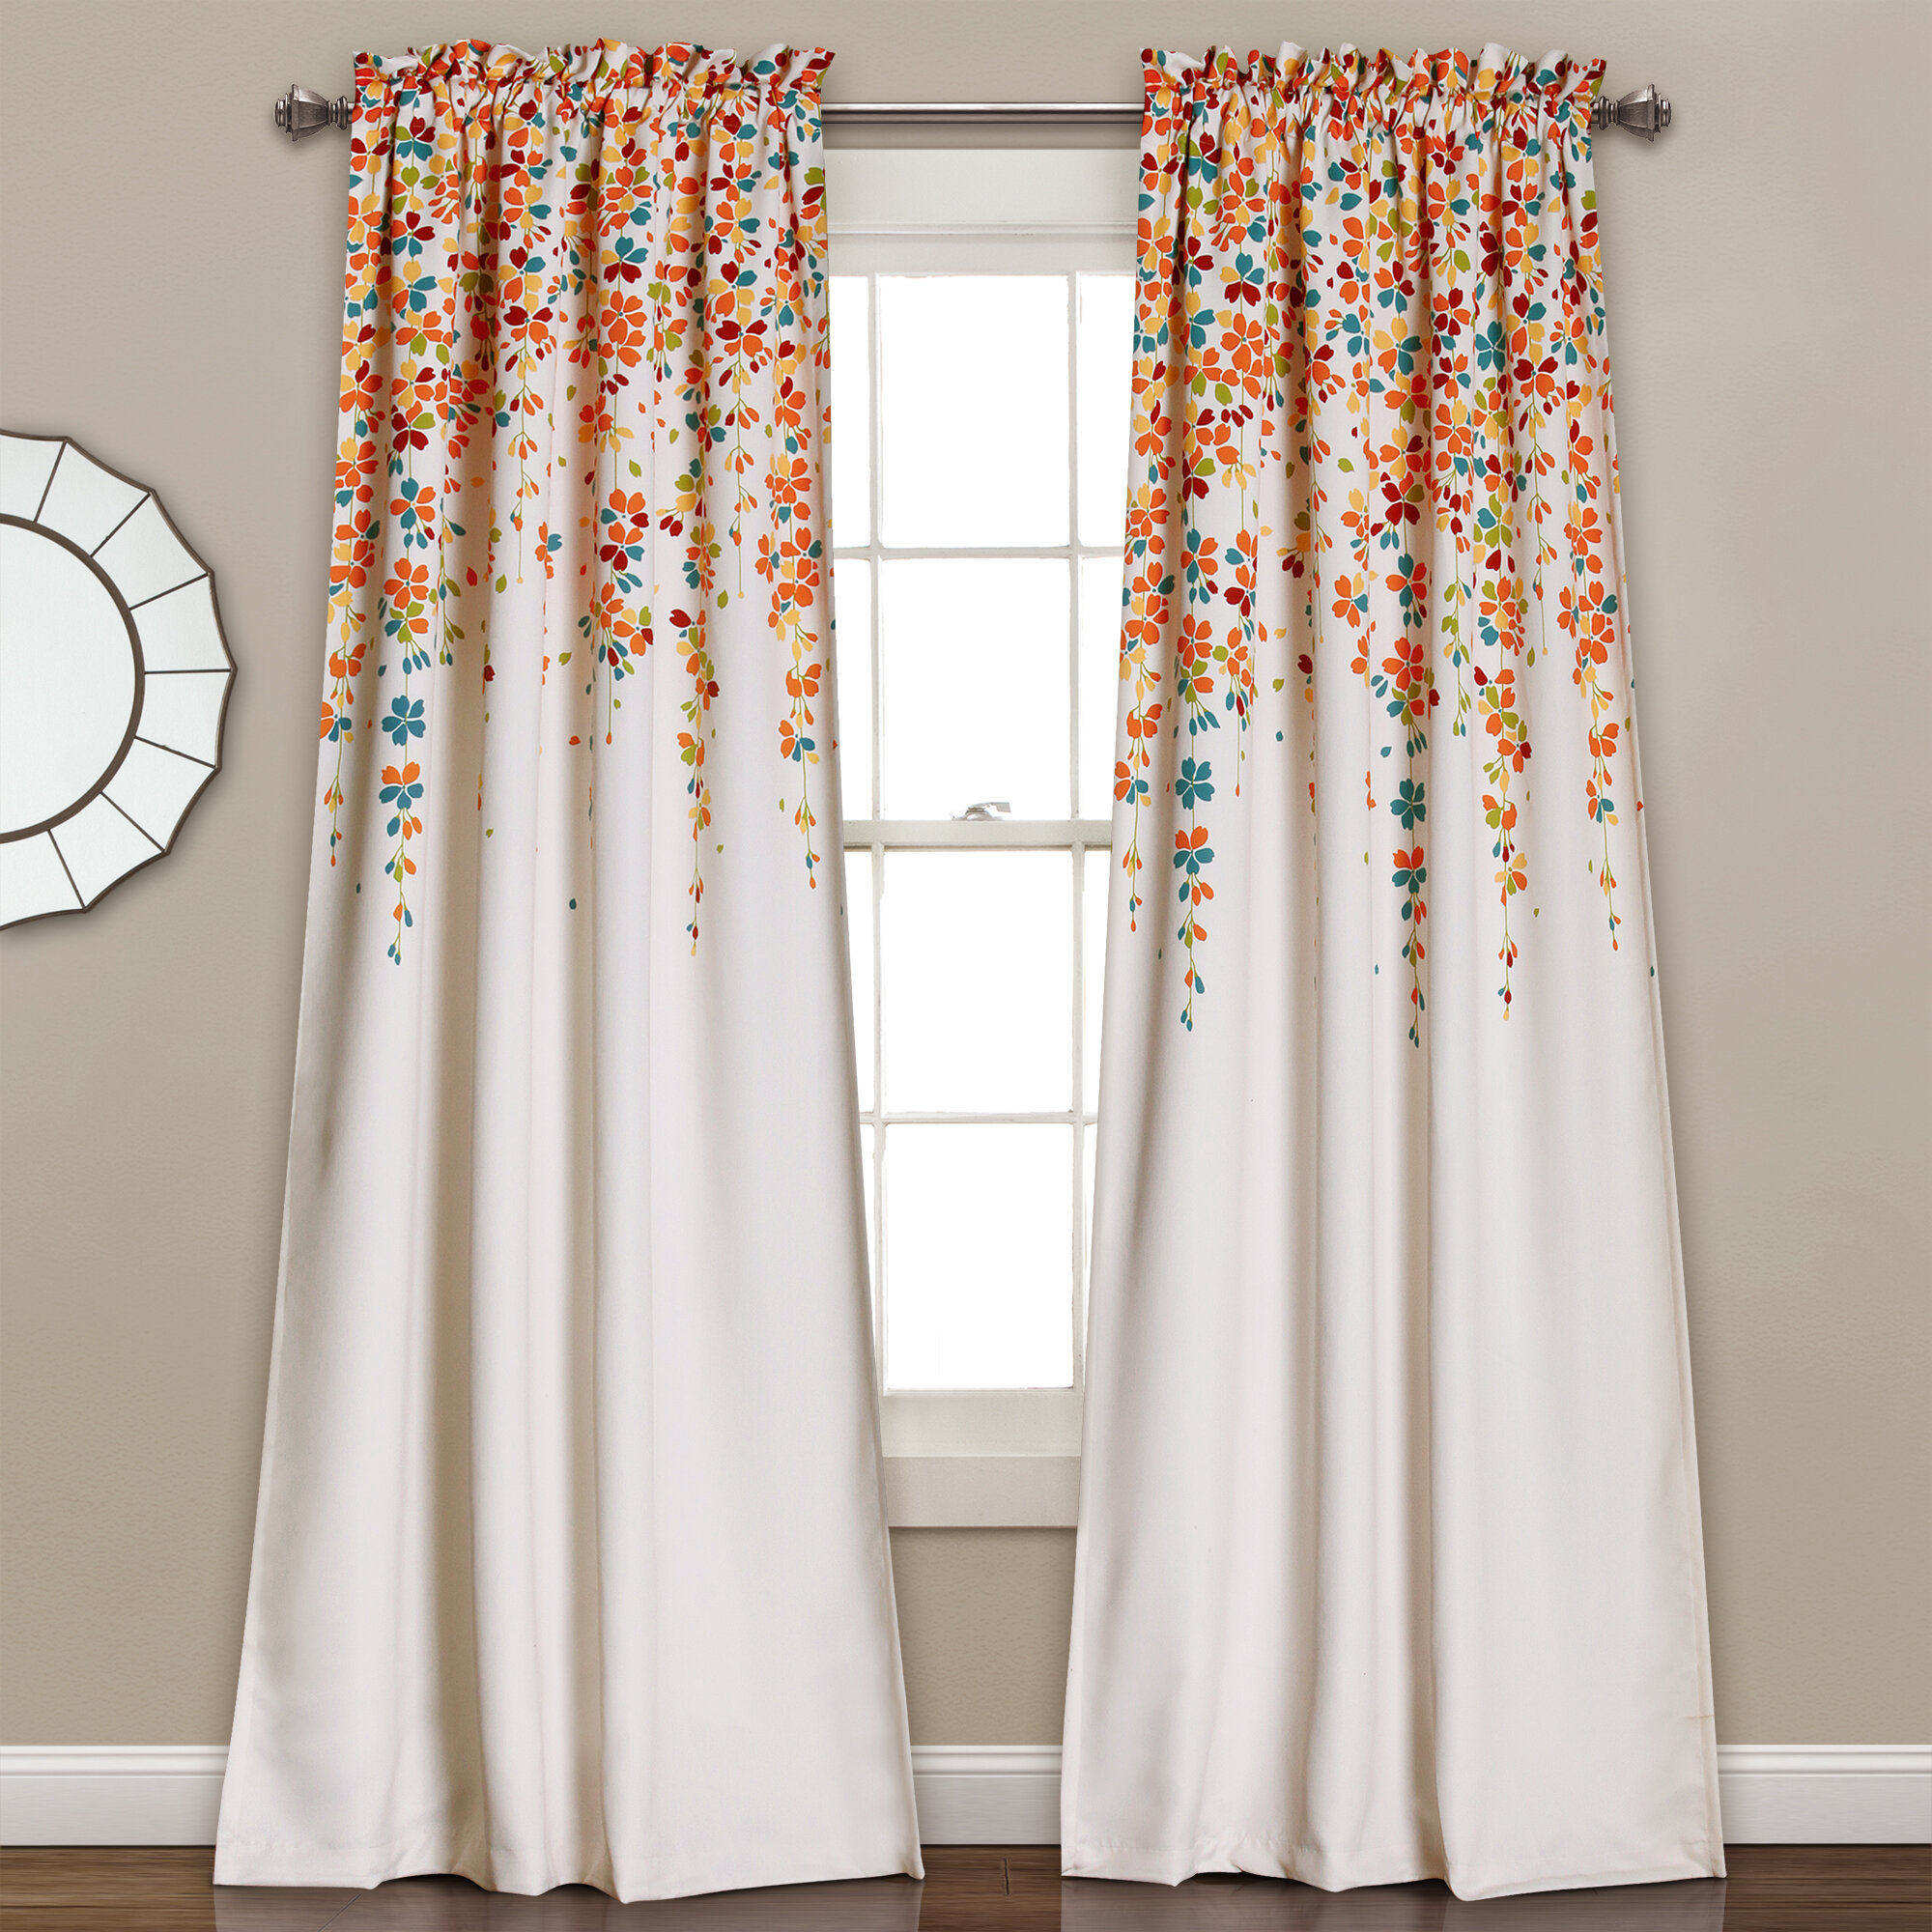 curtains r m vertical and blinds vs fantasy drapes